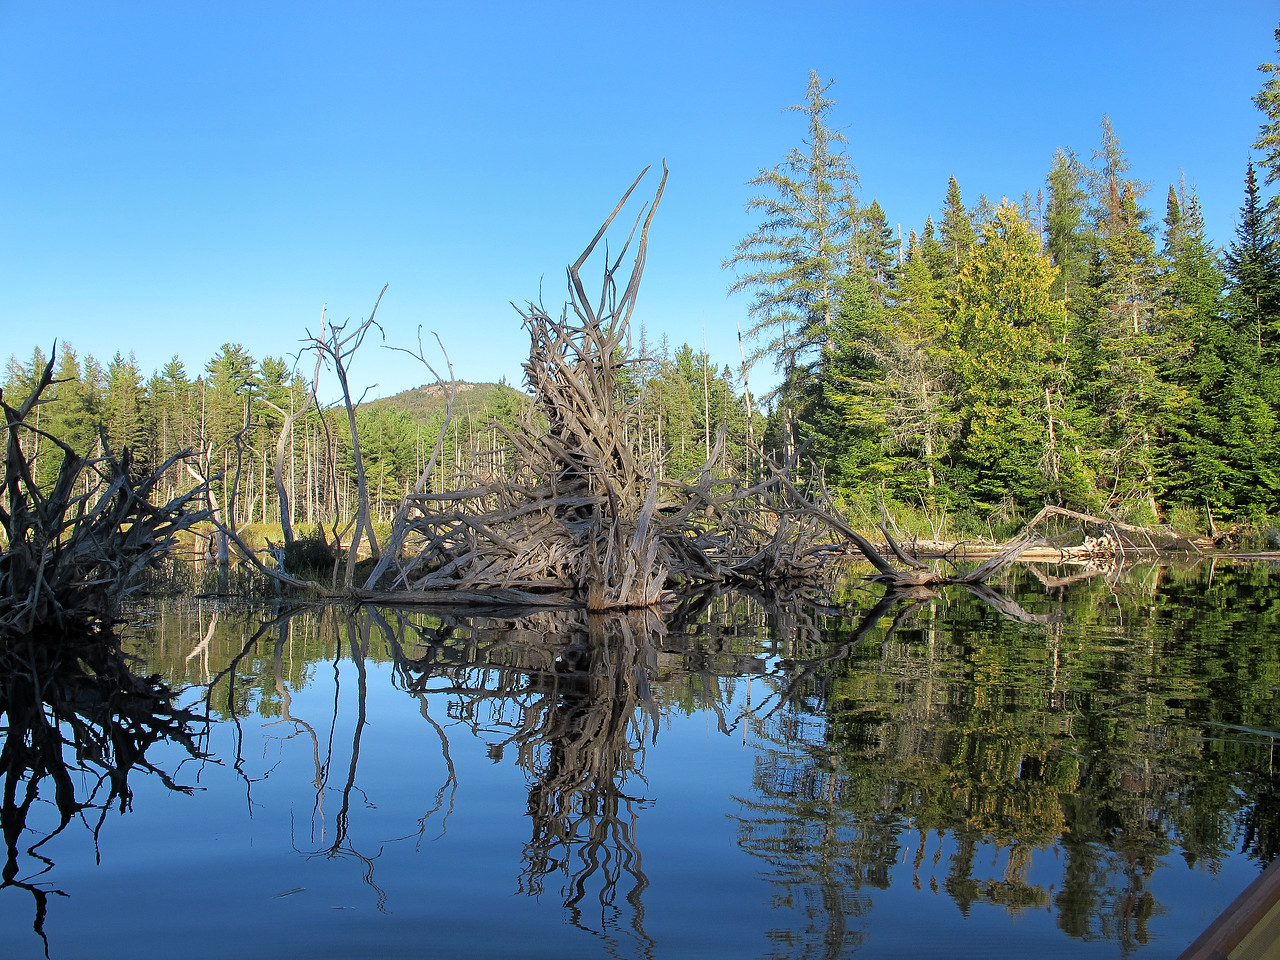 September 9 - Grasse Pond in the northern Adirondacks.